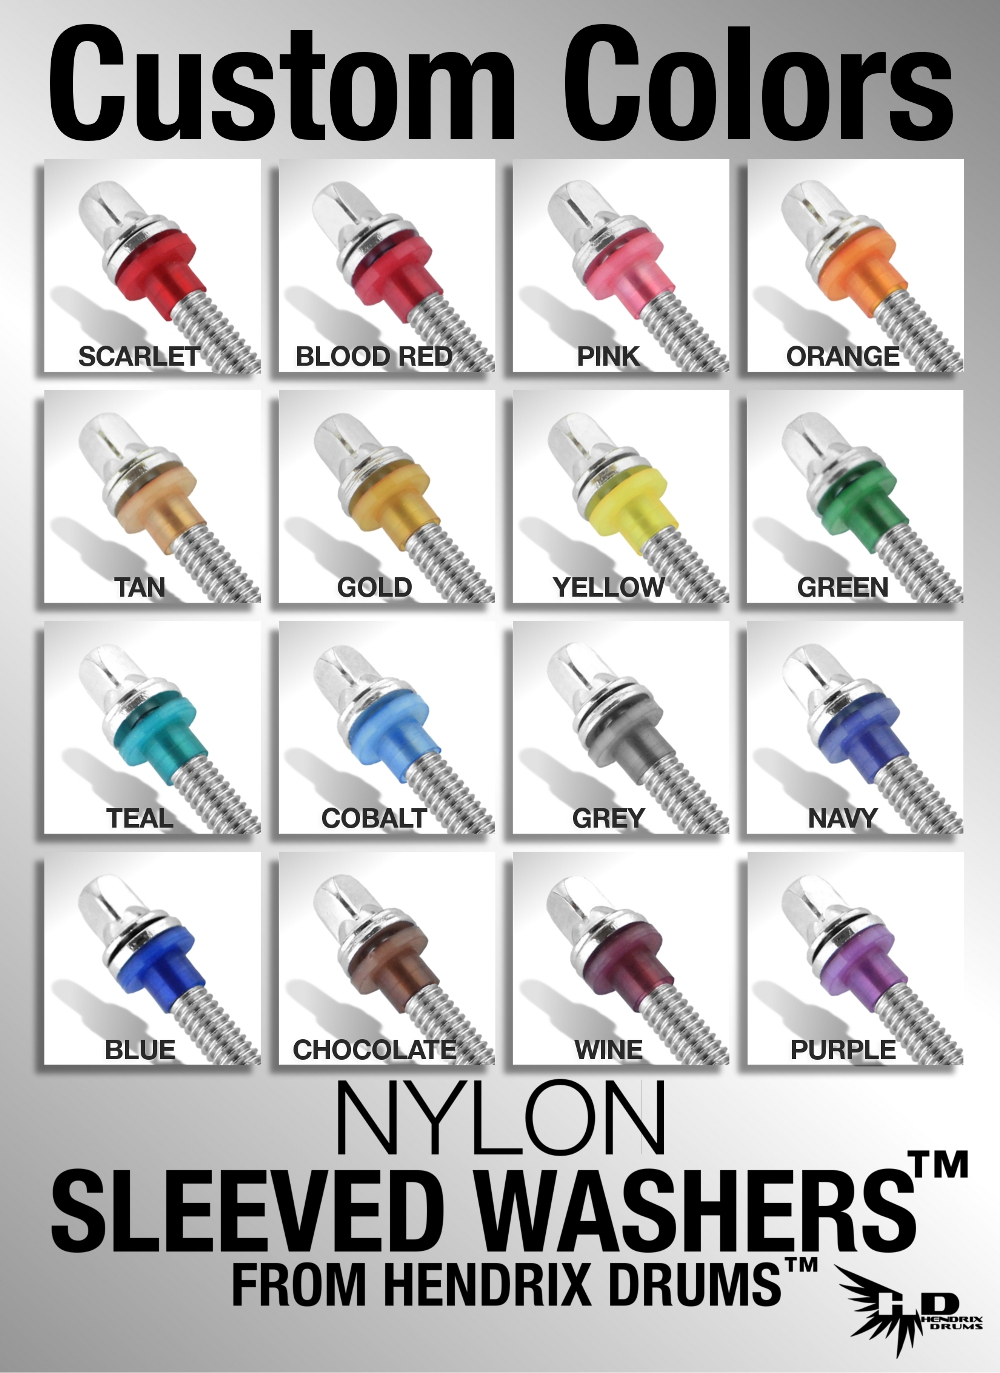 Hendrix Drums Nylon Sleeved Washers Custom Color Chart